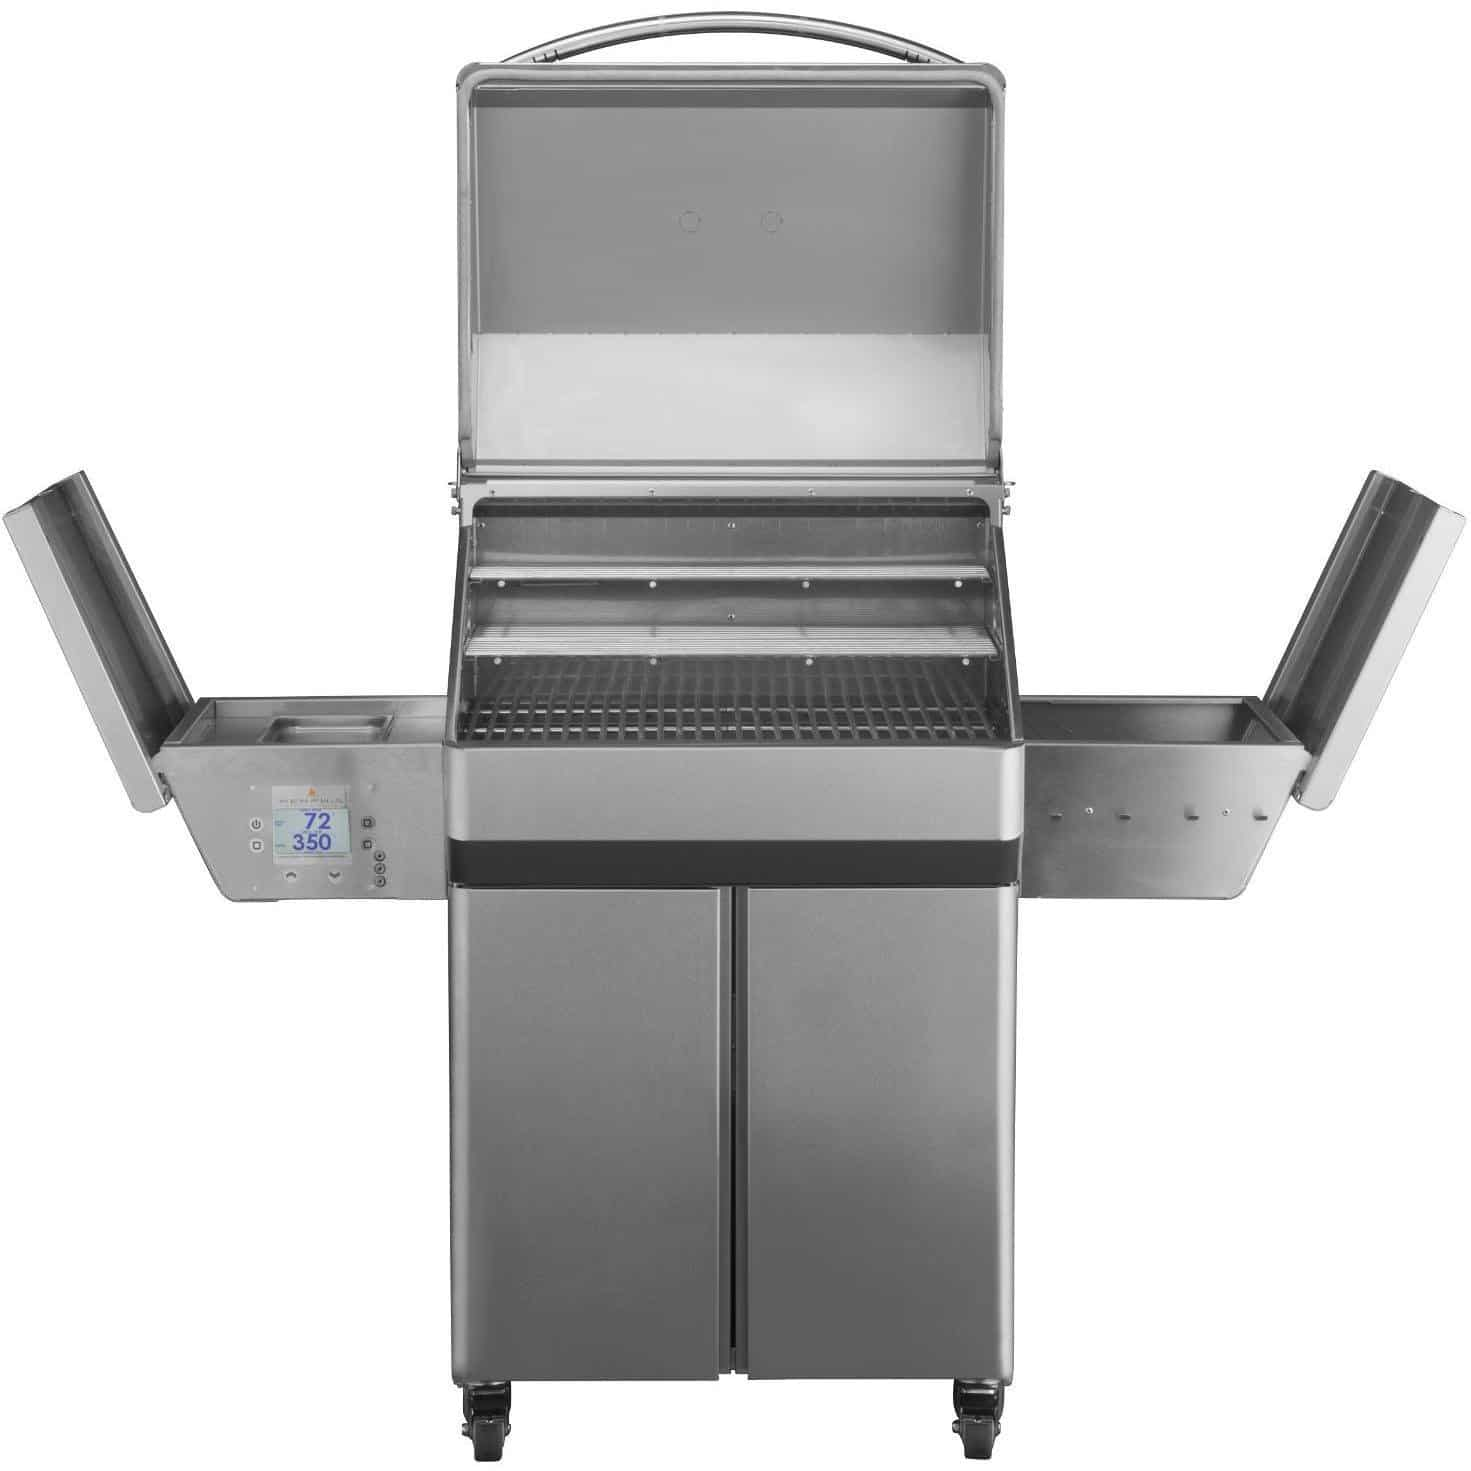 ... Known For Making Superior Premium Quality Grills. They Are Also Known  Throughout The Industry For Providing Excellent Customer Care And Service.